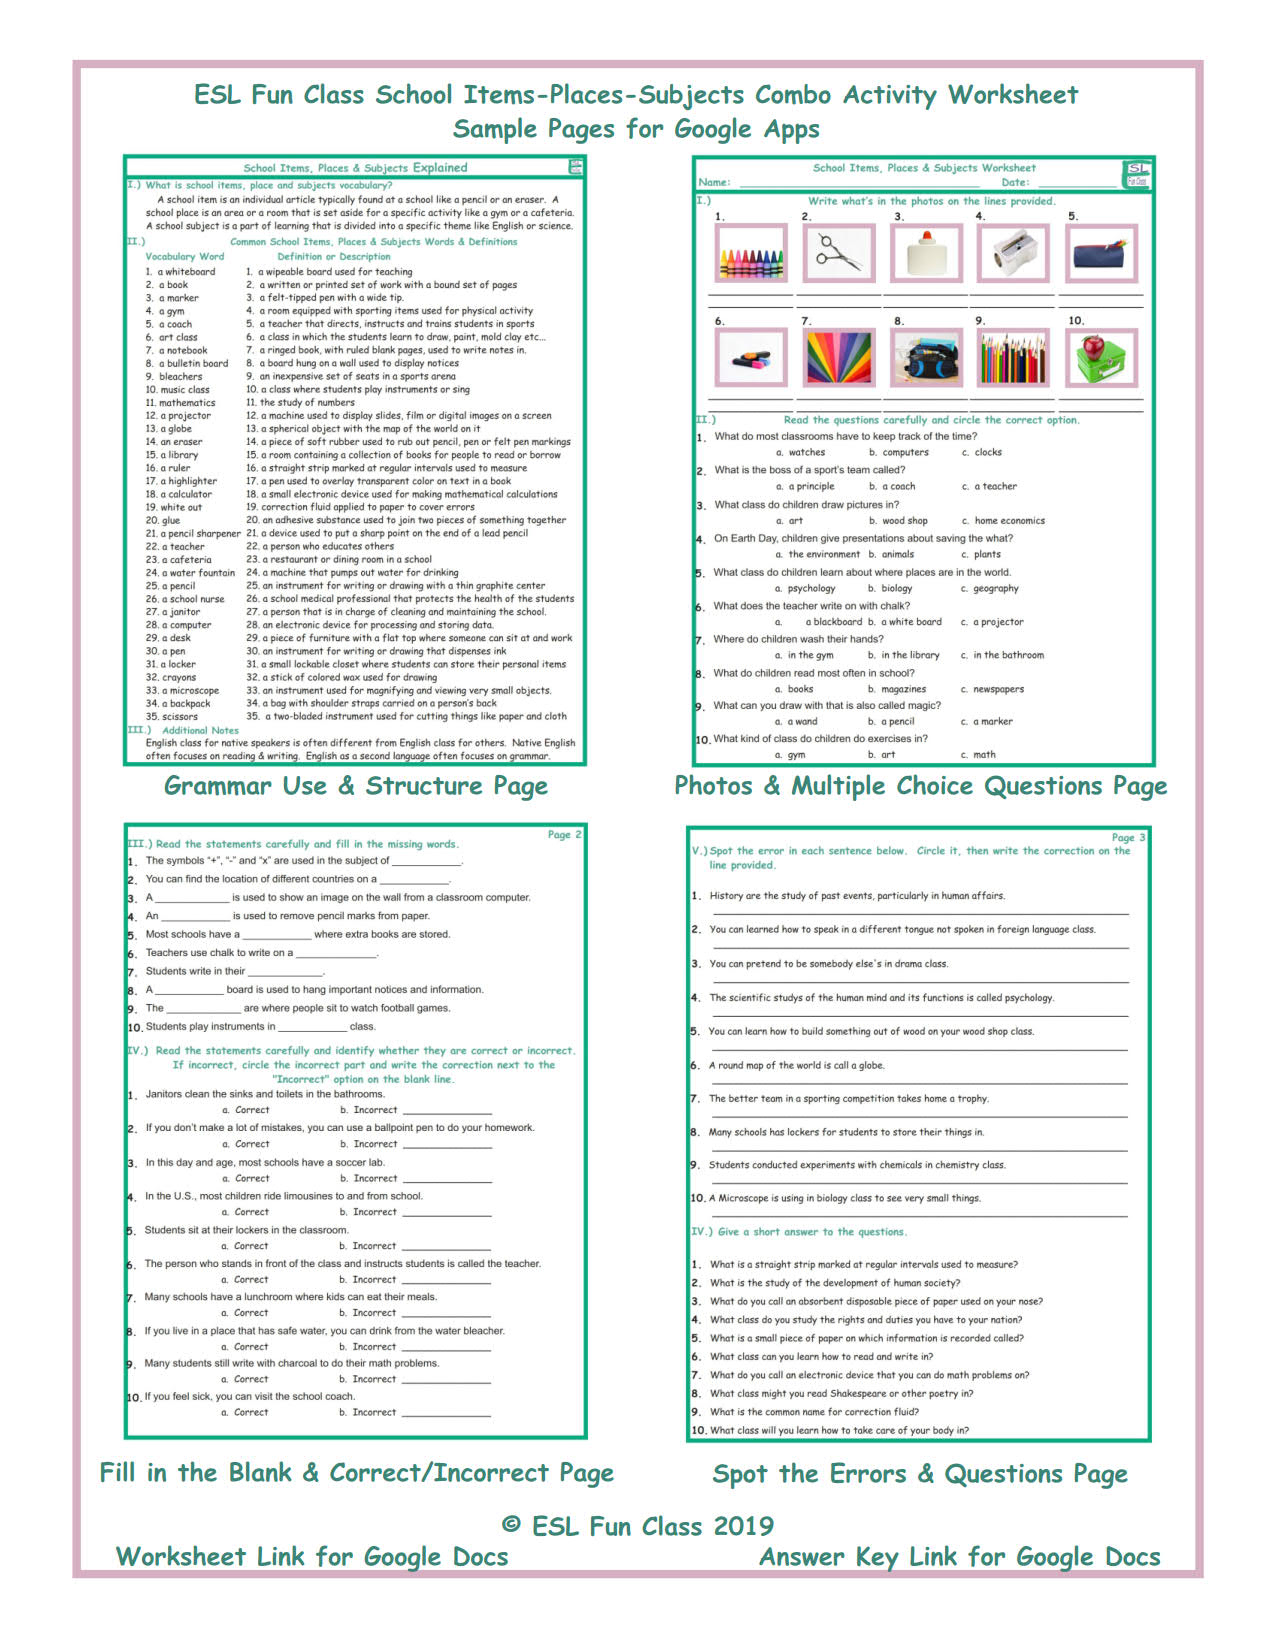 School Items-Places-Subjects Interactive Worksheets for Google Apps